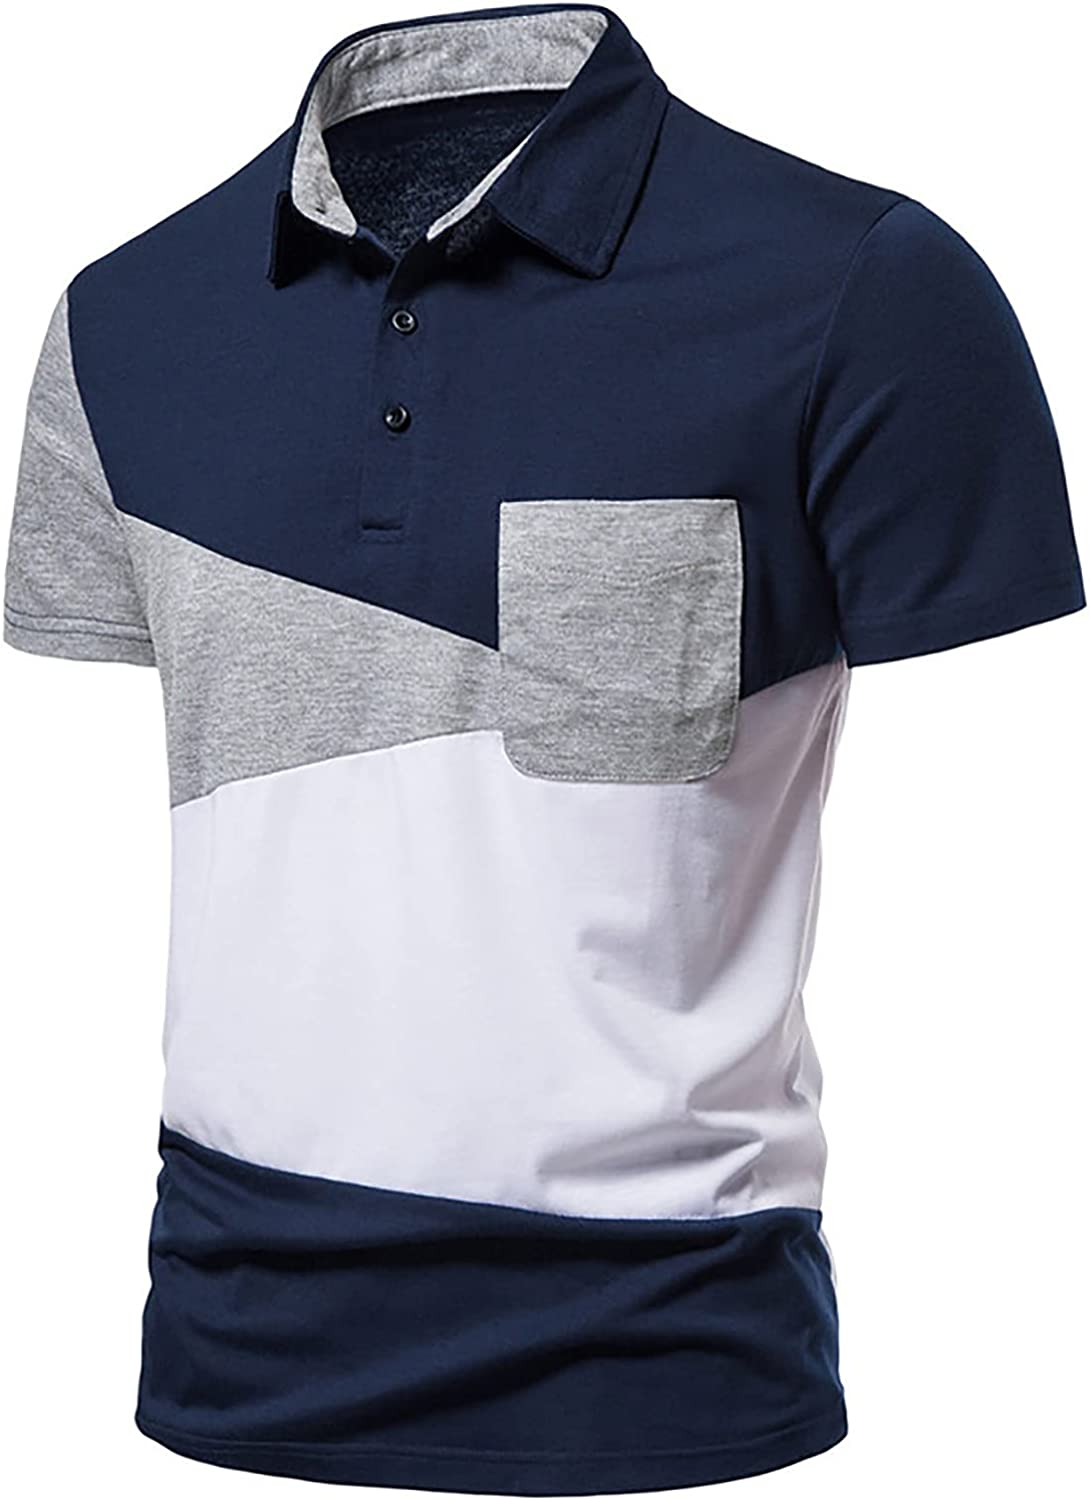 Men's Short Sleeved Patchwork Blouse Button Down Outdoor Tops Turn-Down Collar Faction Polo-Shirt